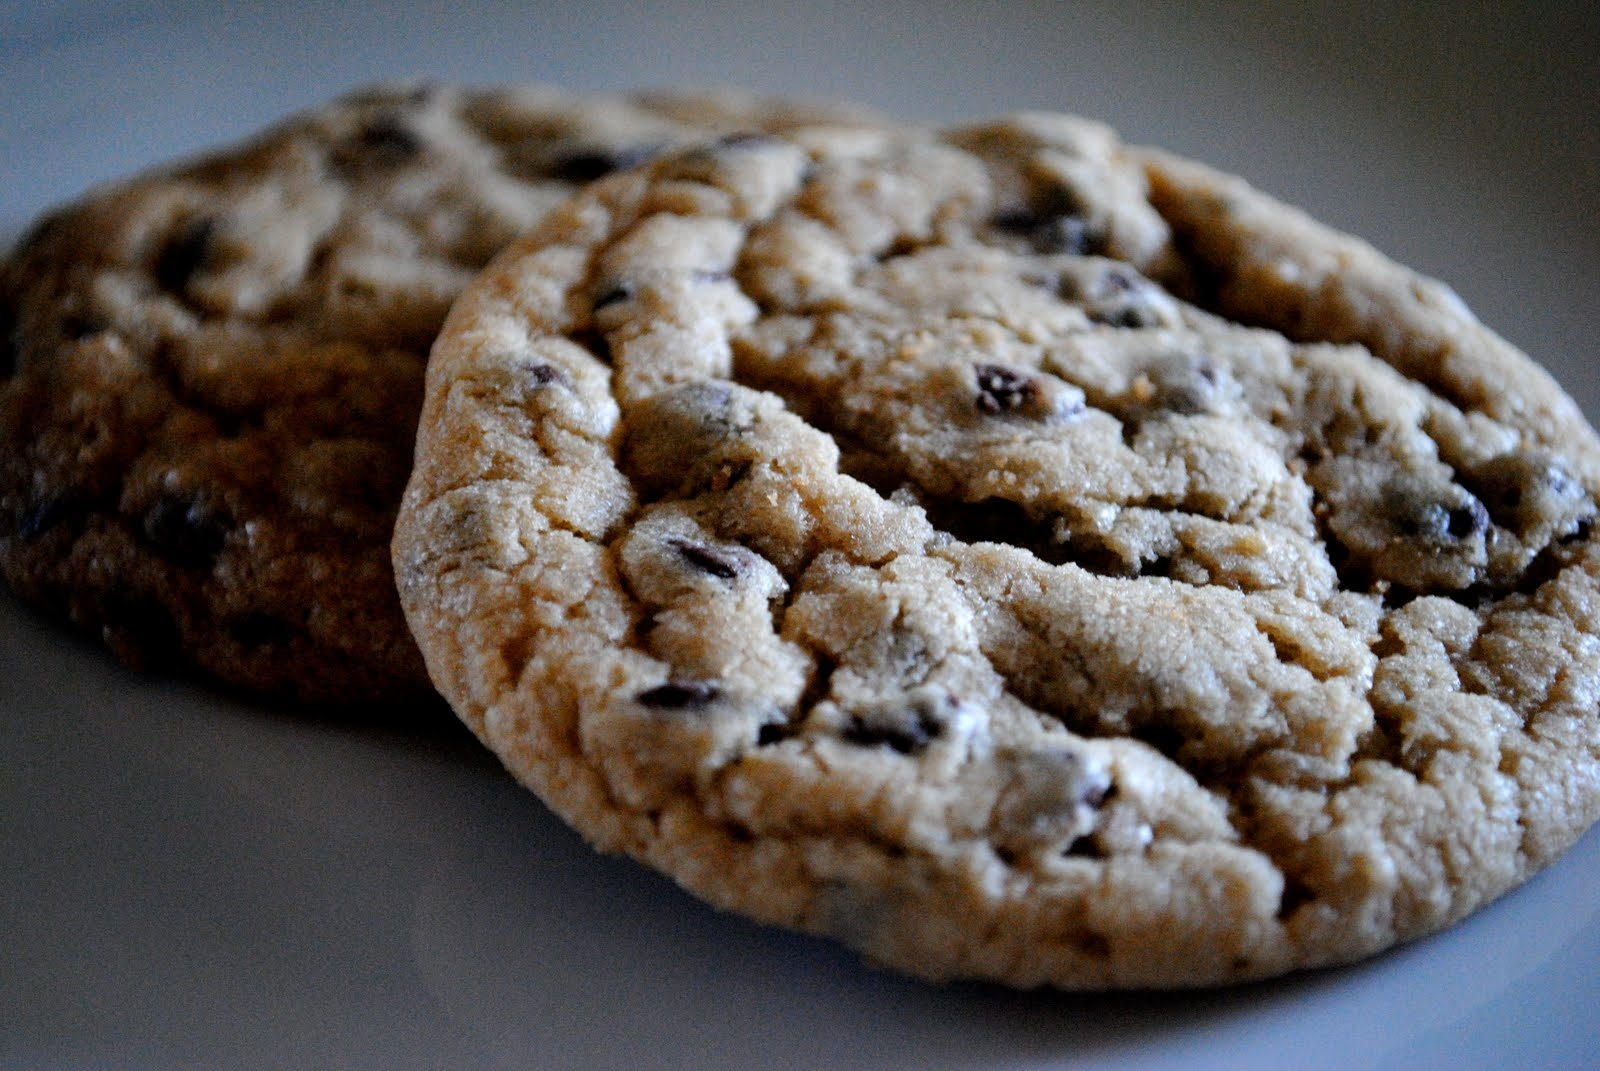 Home » Chocolate » My Favorite Chocolate Chip Cookies